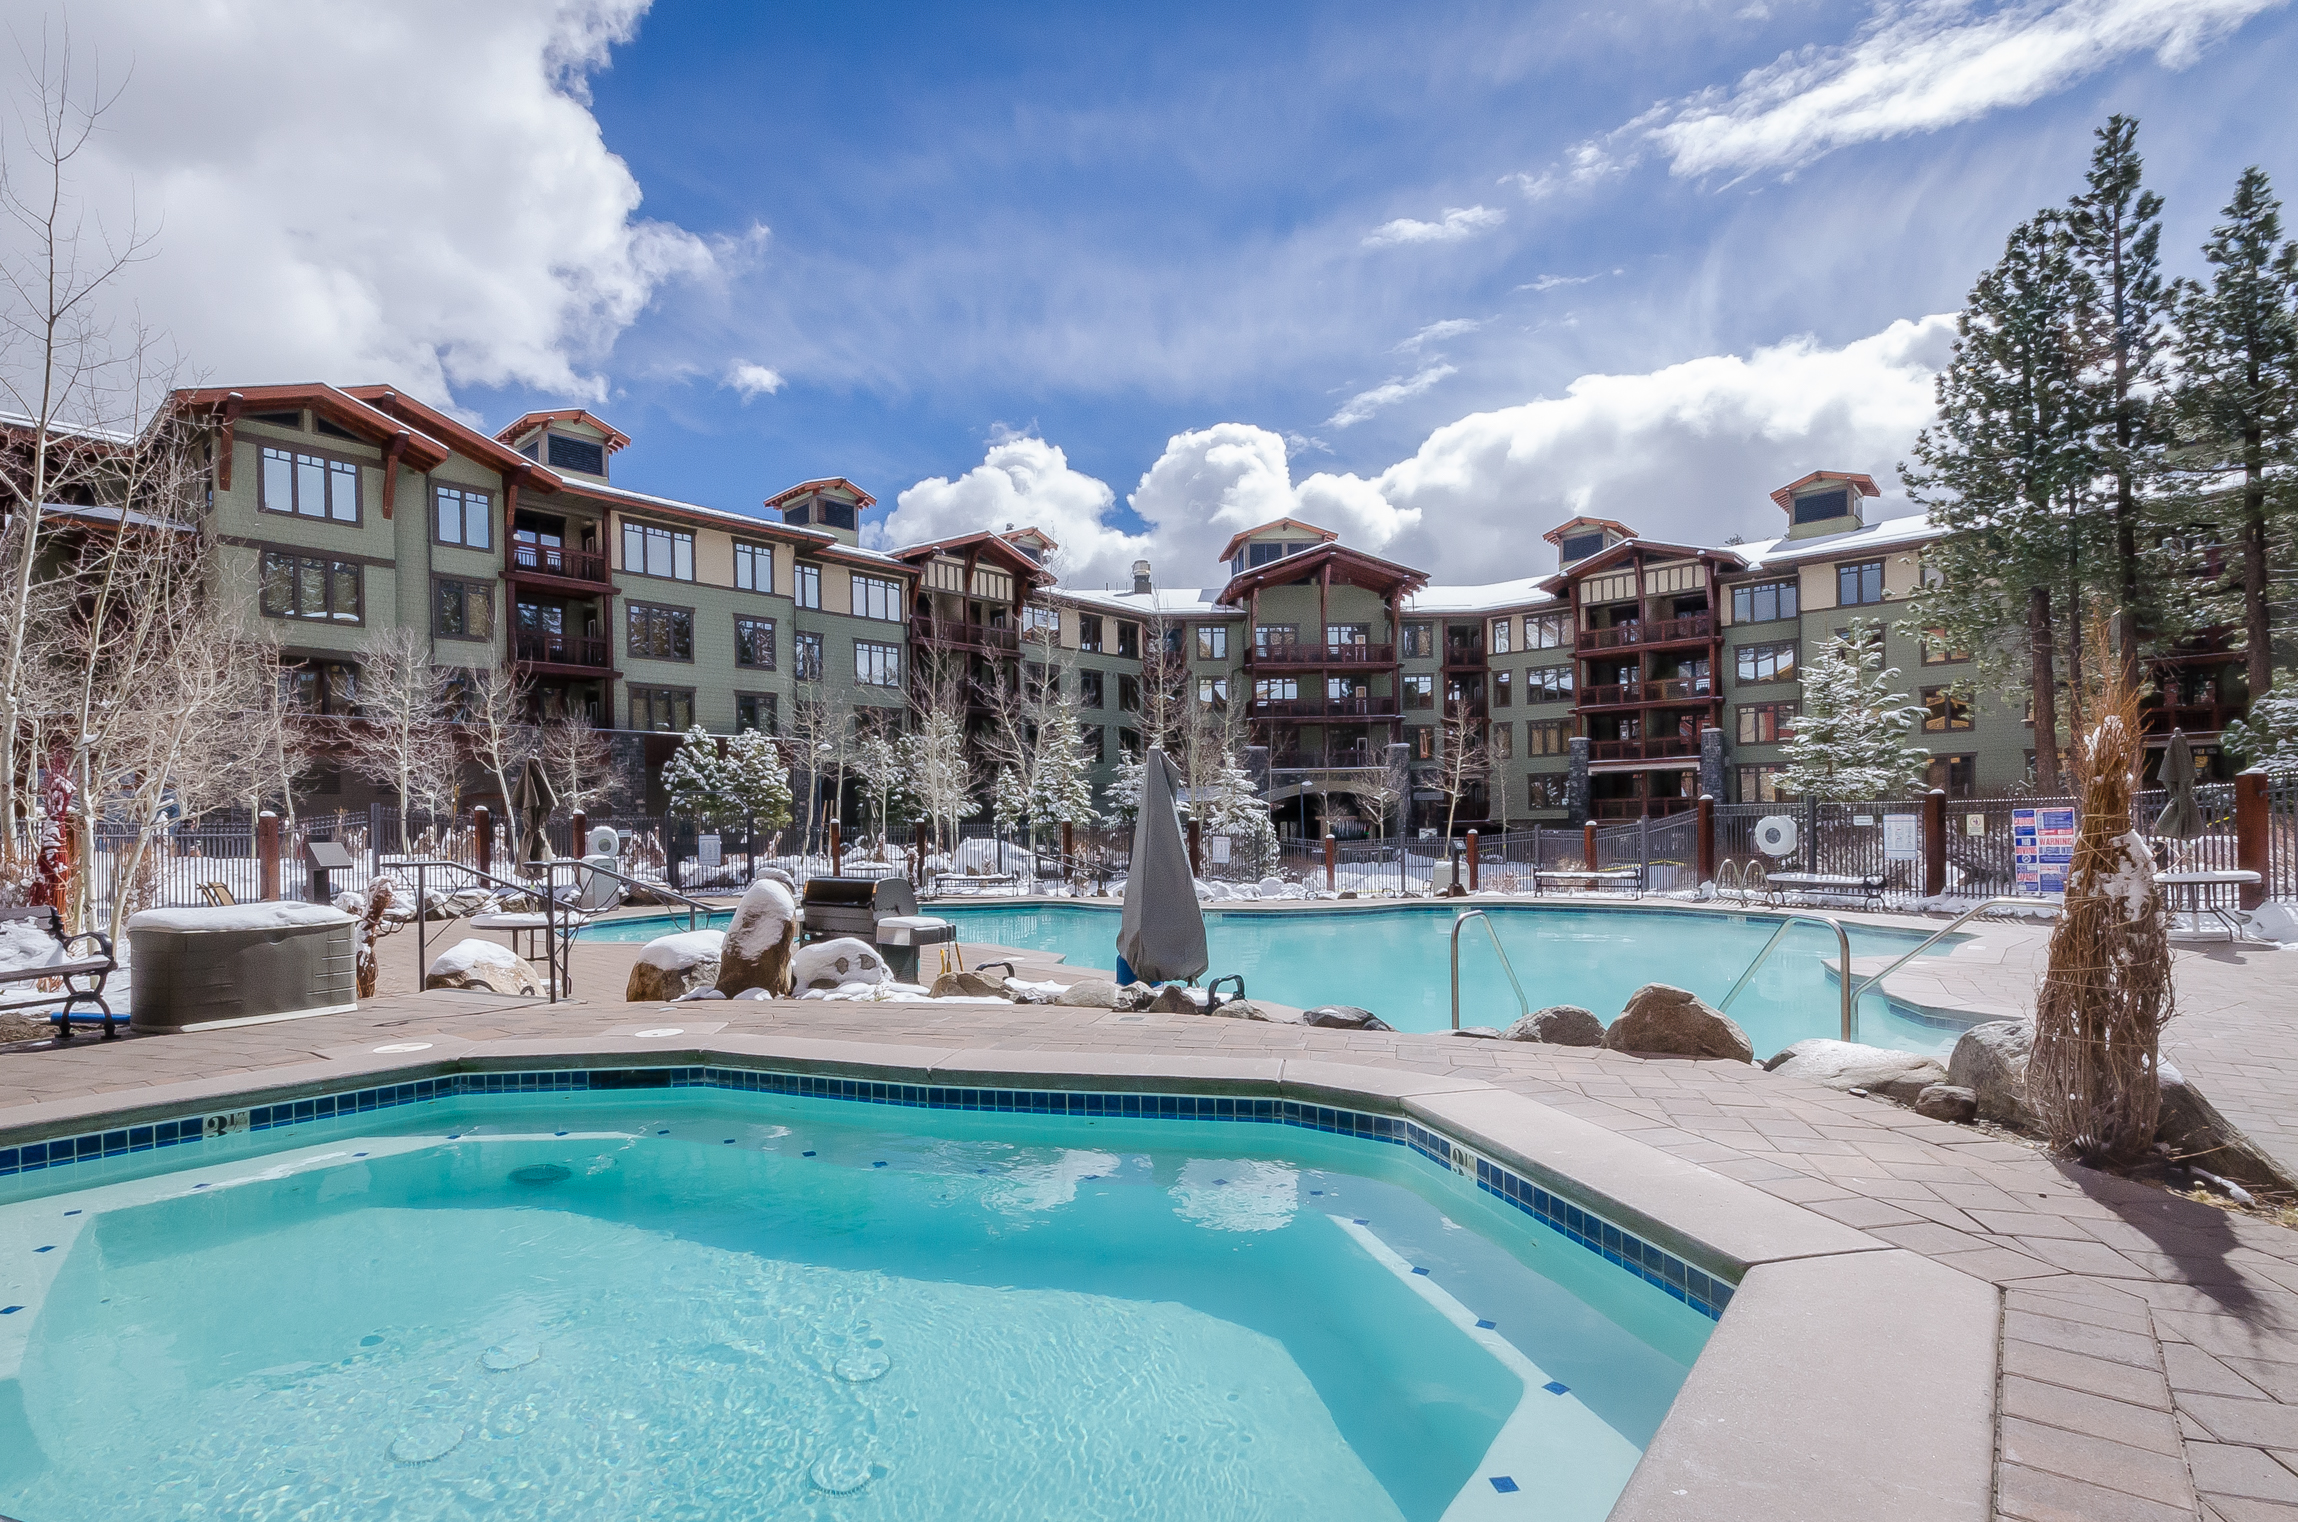 Grand Sierra Lodge Heated Swimming Pool in Winter